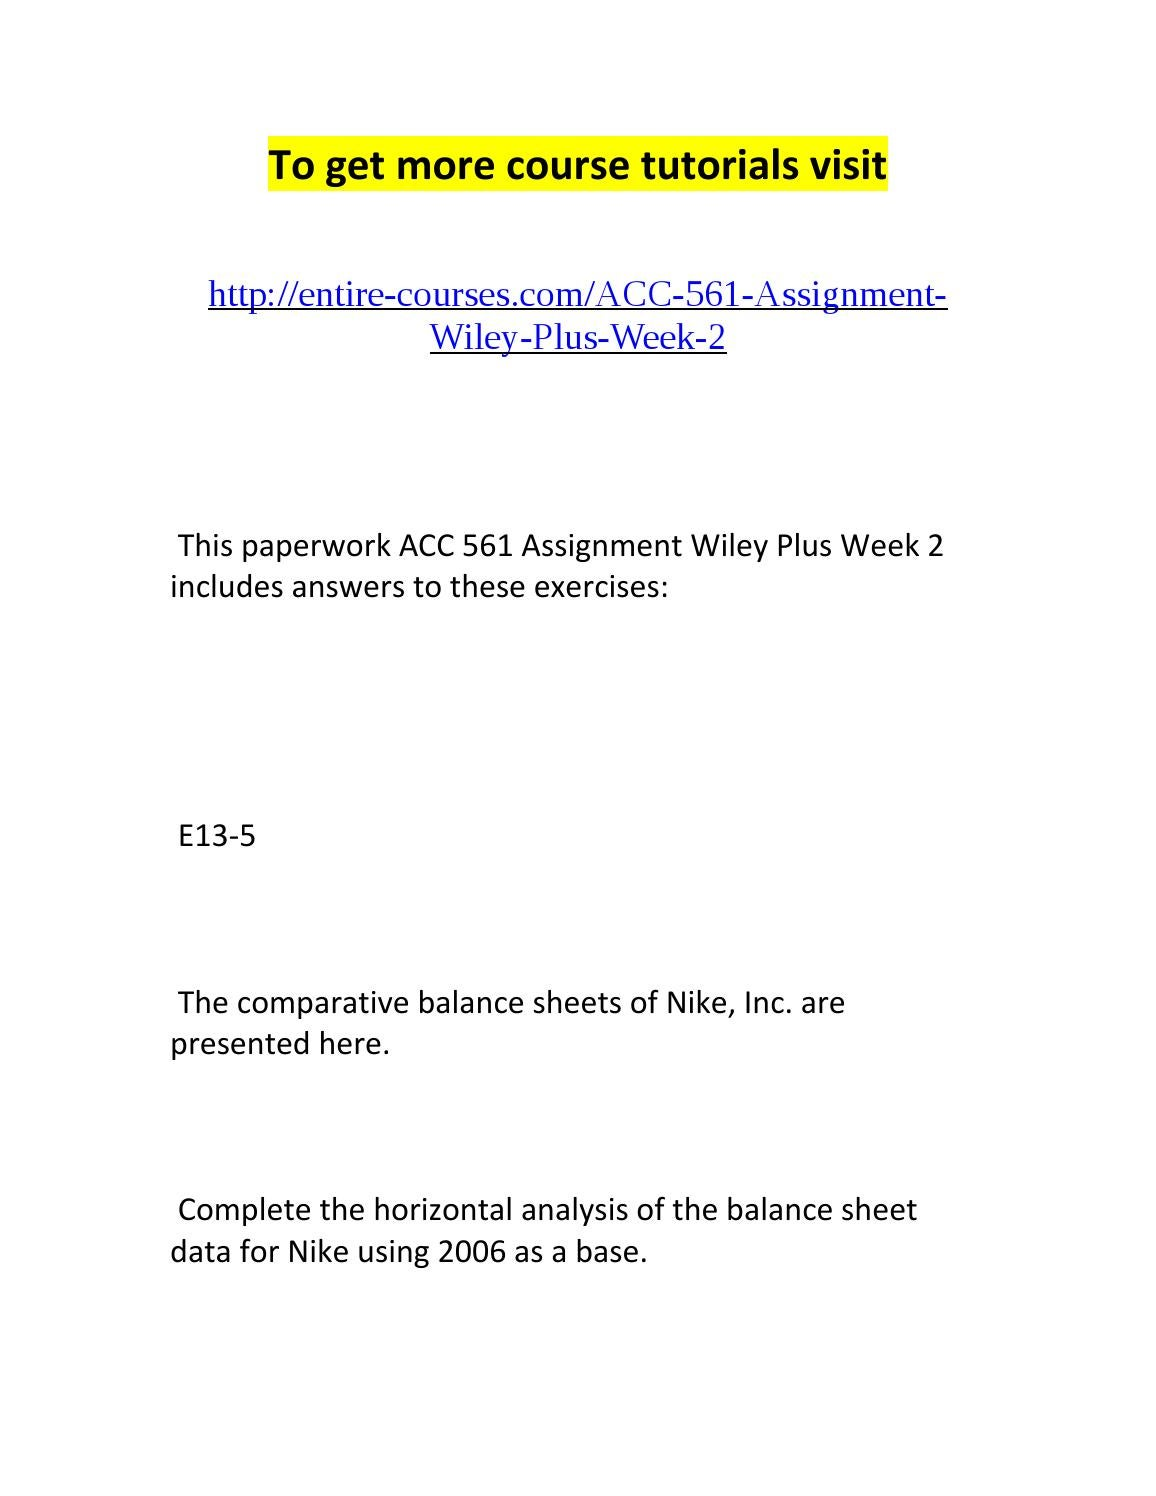 acc 561 assignment wiley plus week 2 by brian - issuu